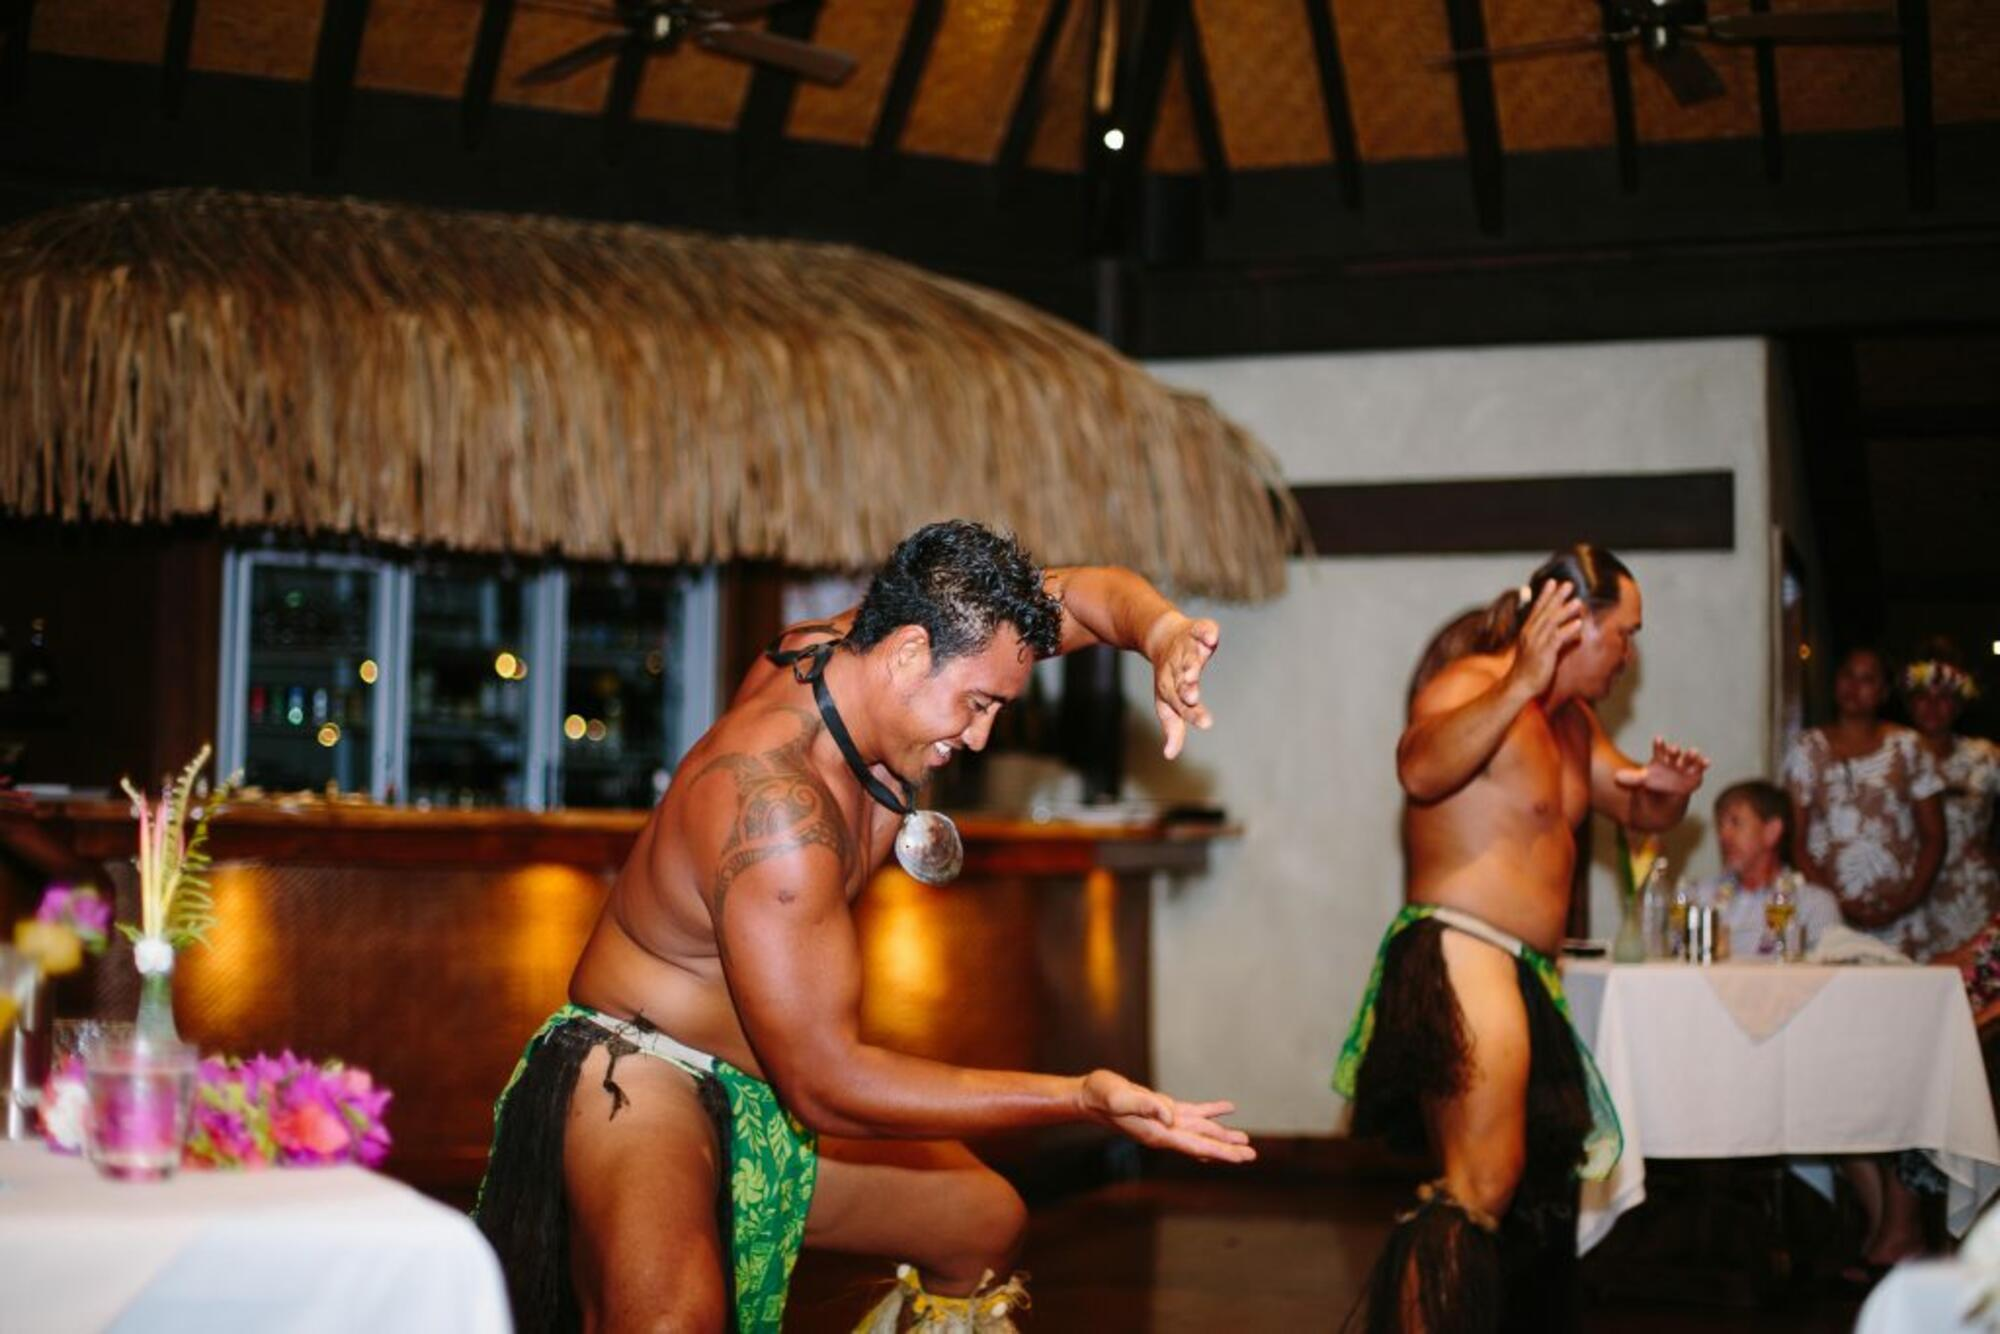 Island Night at Pacific Resort Aitutaki